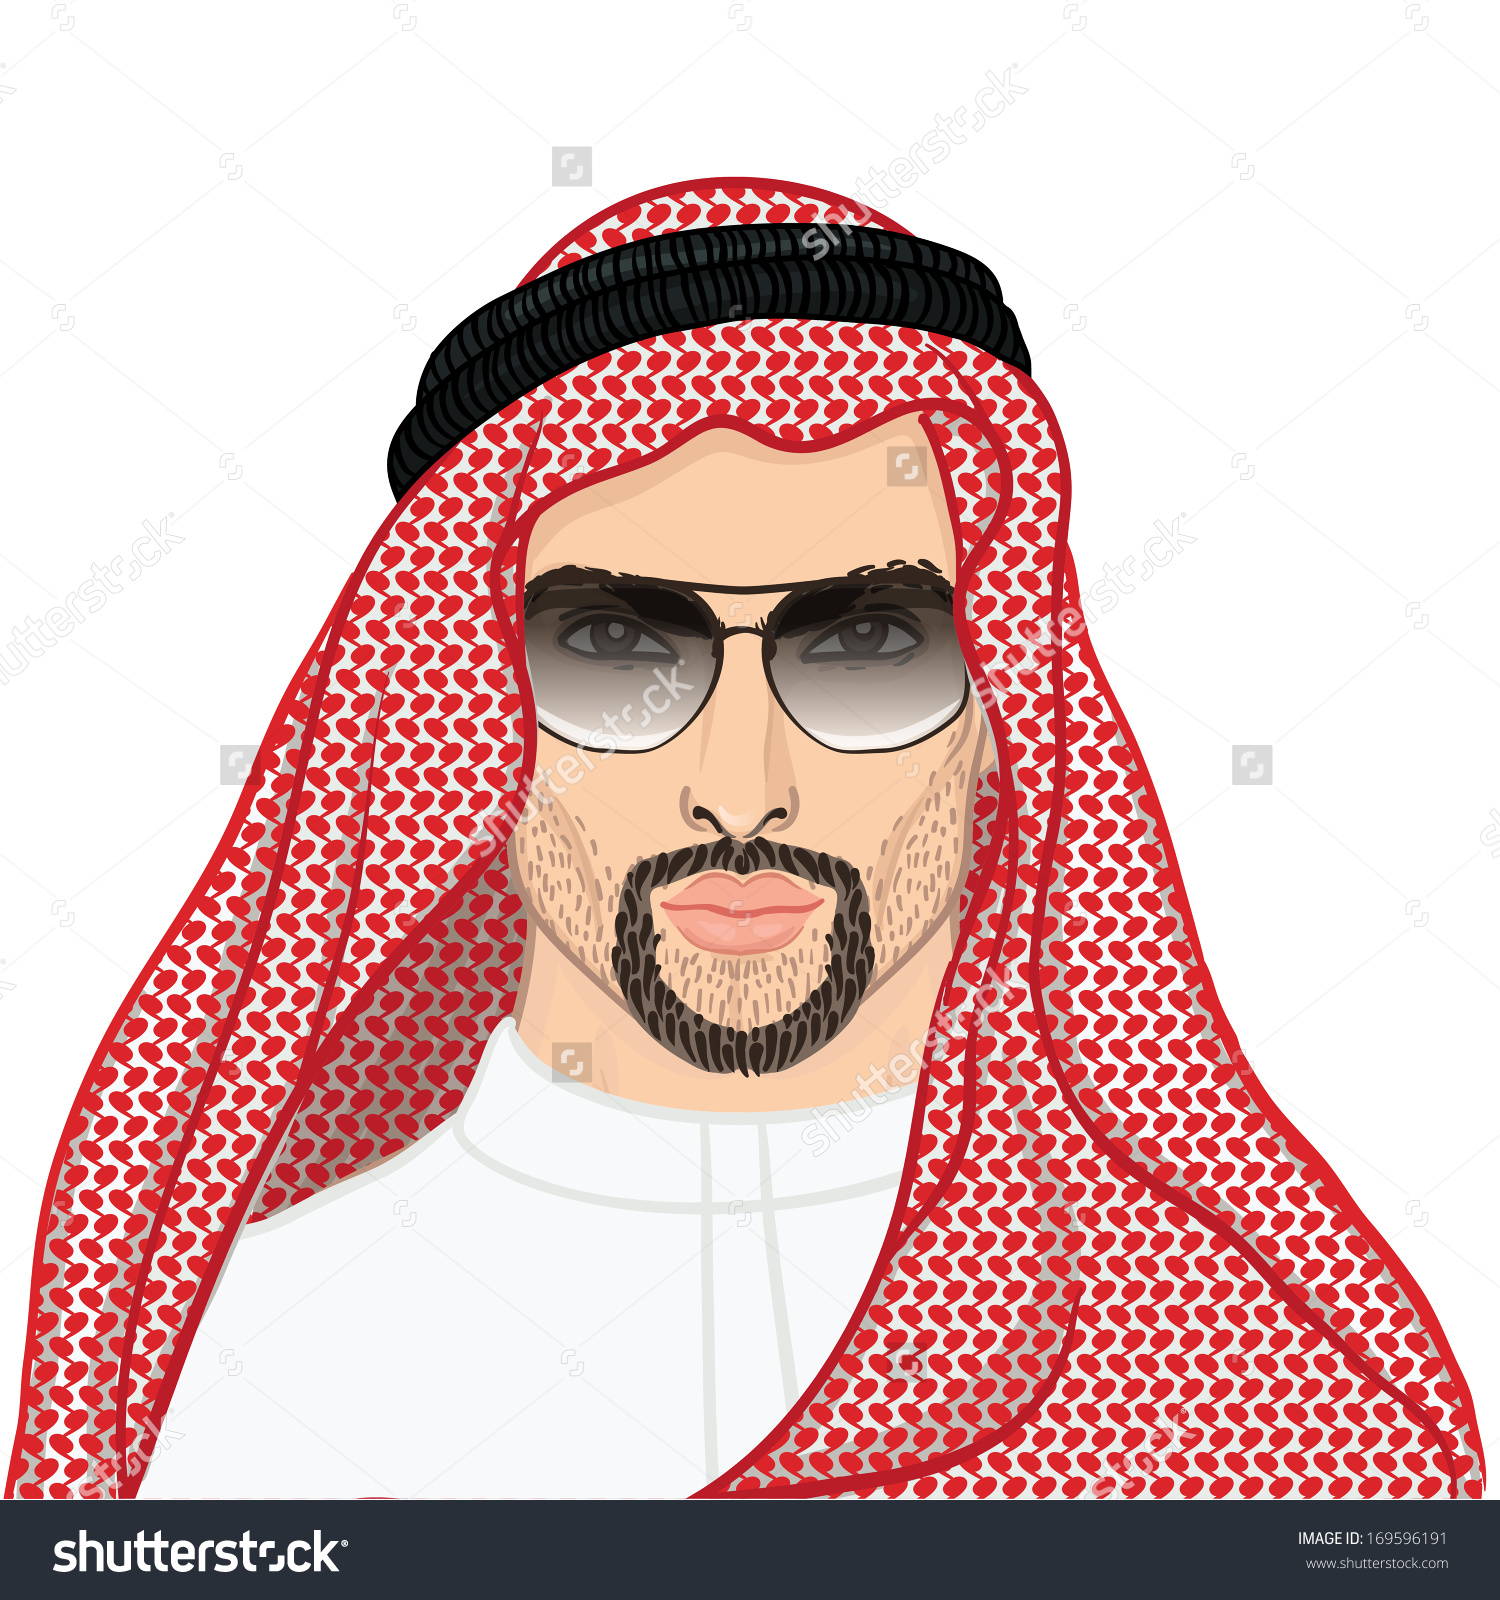 Arabian clipart arabic man #5